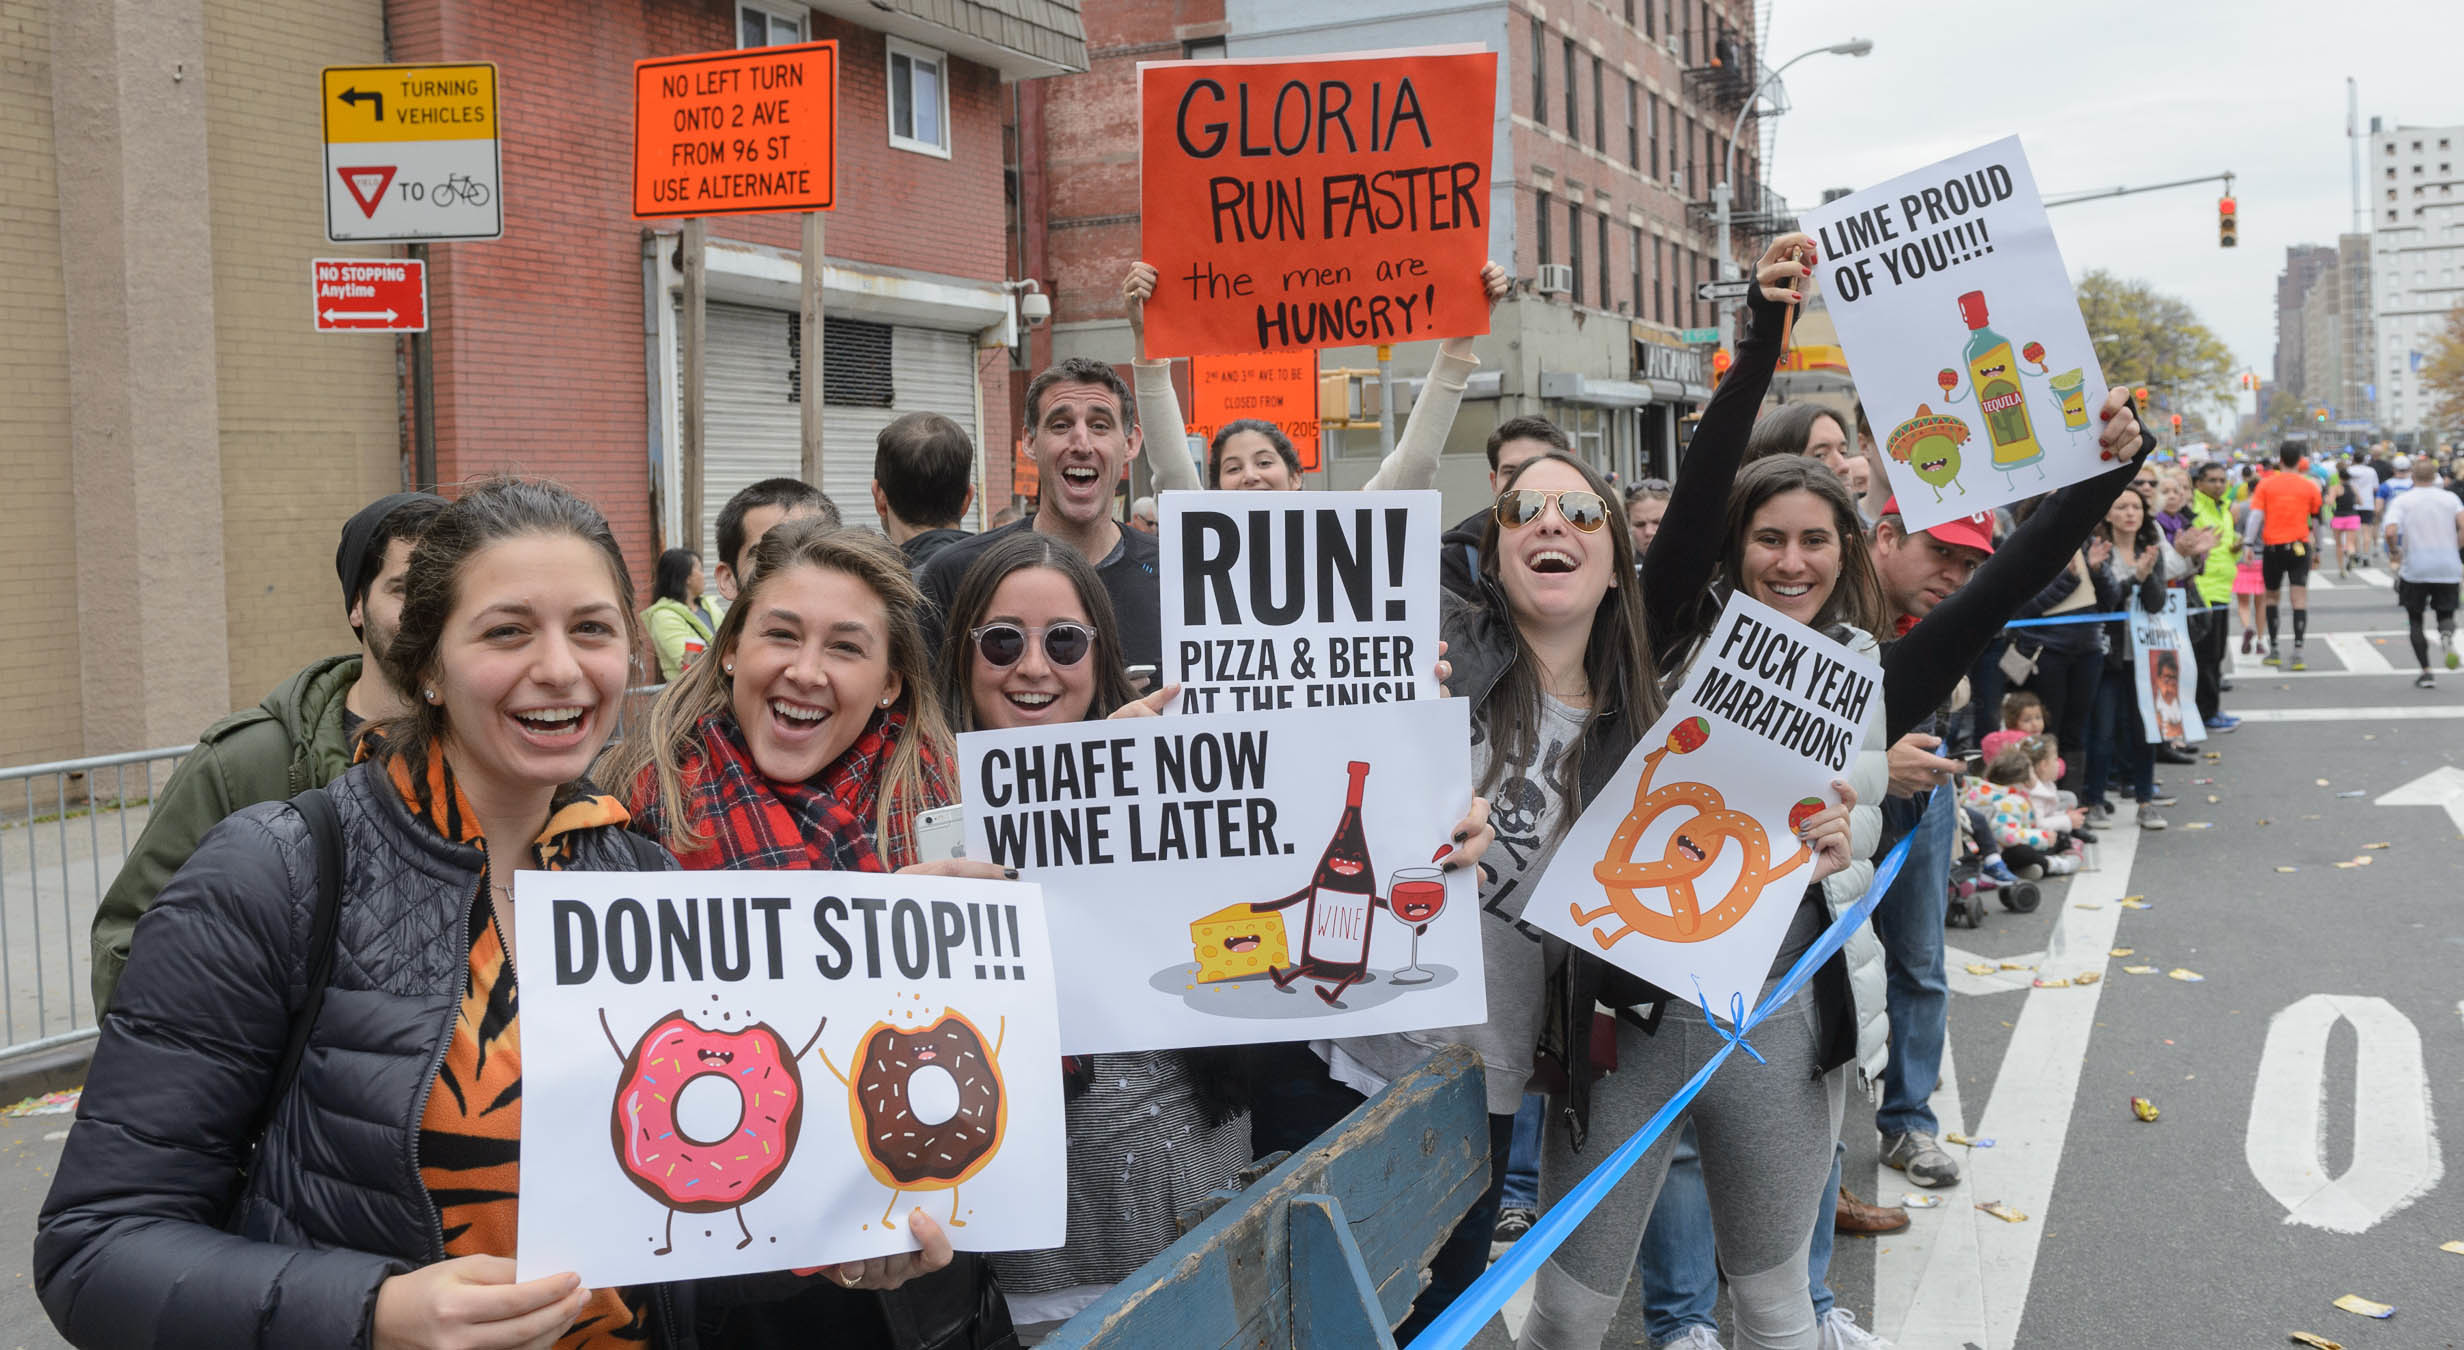 The 20 best signs from the 2015 NYC Marathon